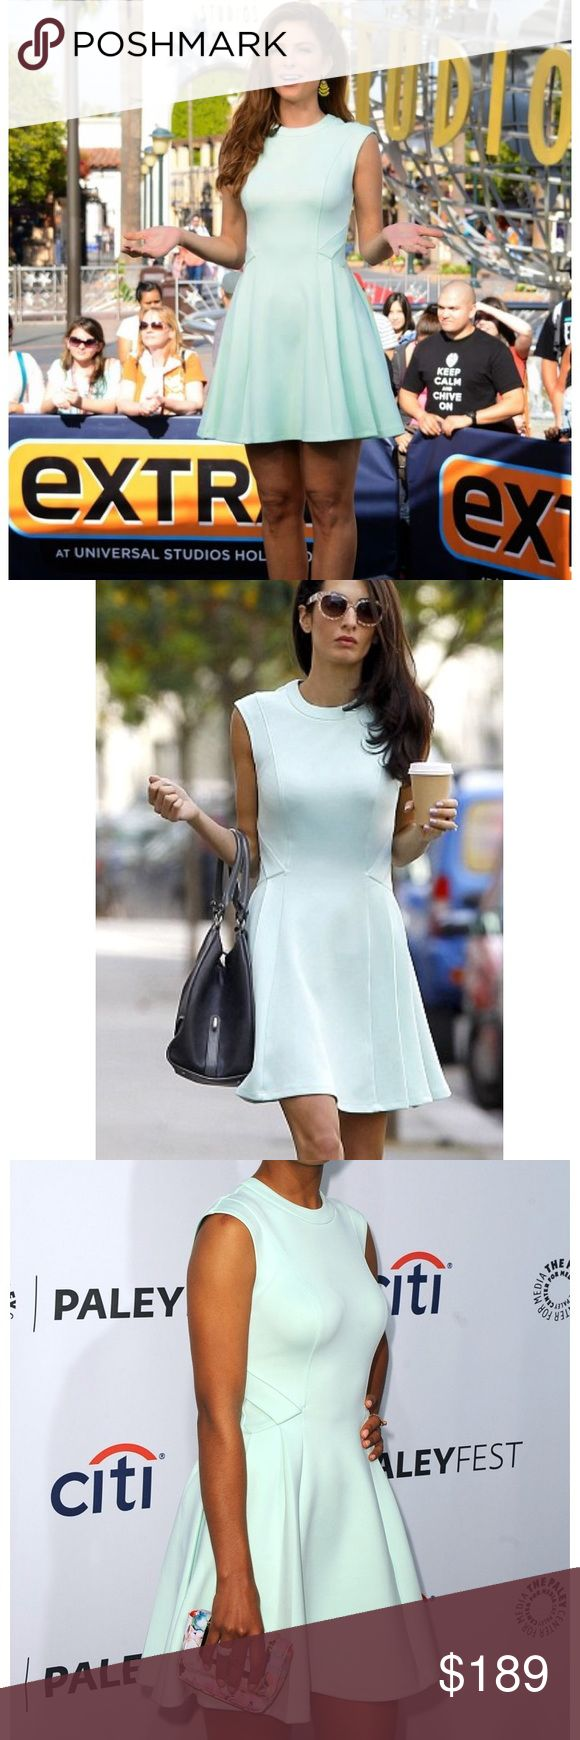 🌲MAKE AN OFFER🌲Ted Baker Scuba Dress Mint Green Ted Baker Scuba Dress In Mint Green, brand new with tags, size 1, fits as 0/2/XS, ask for specific measurements if unsure of size. Material is scuba like, stretchy, back zipper. Ted Baker Dresses